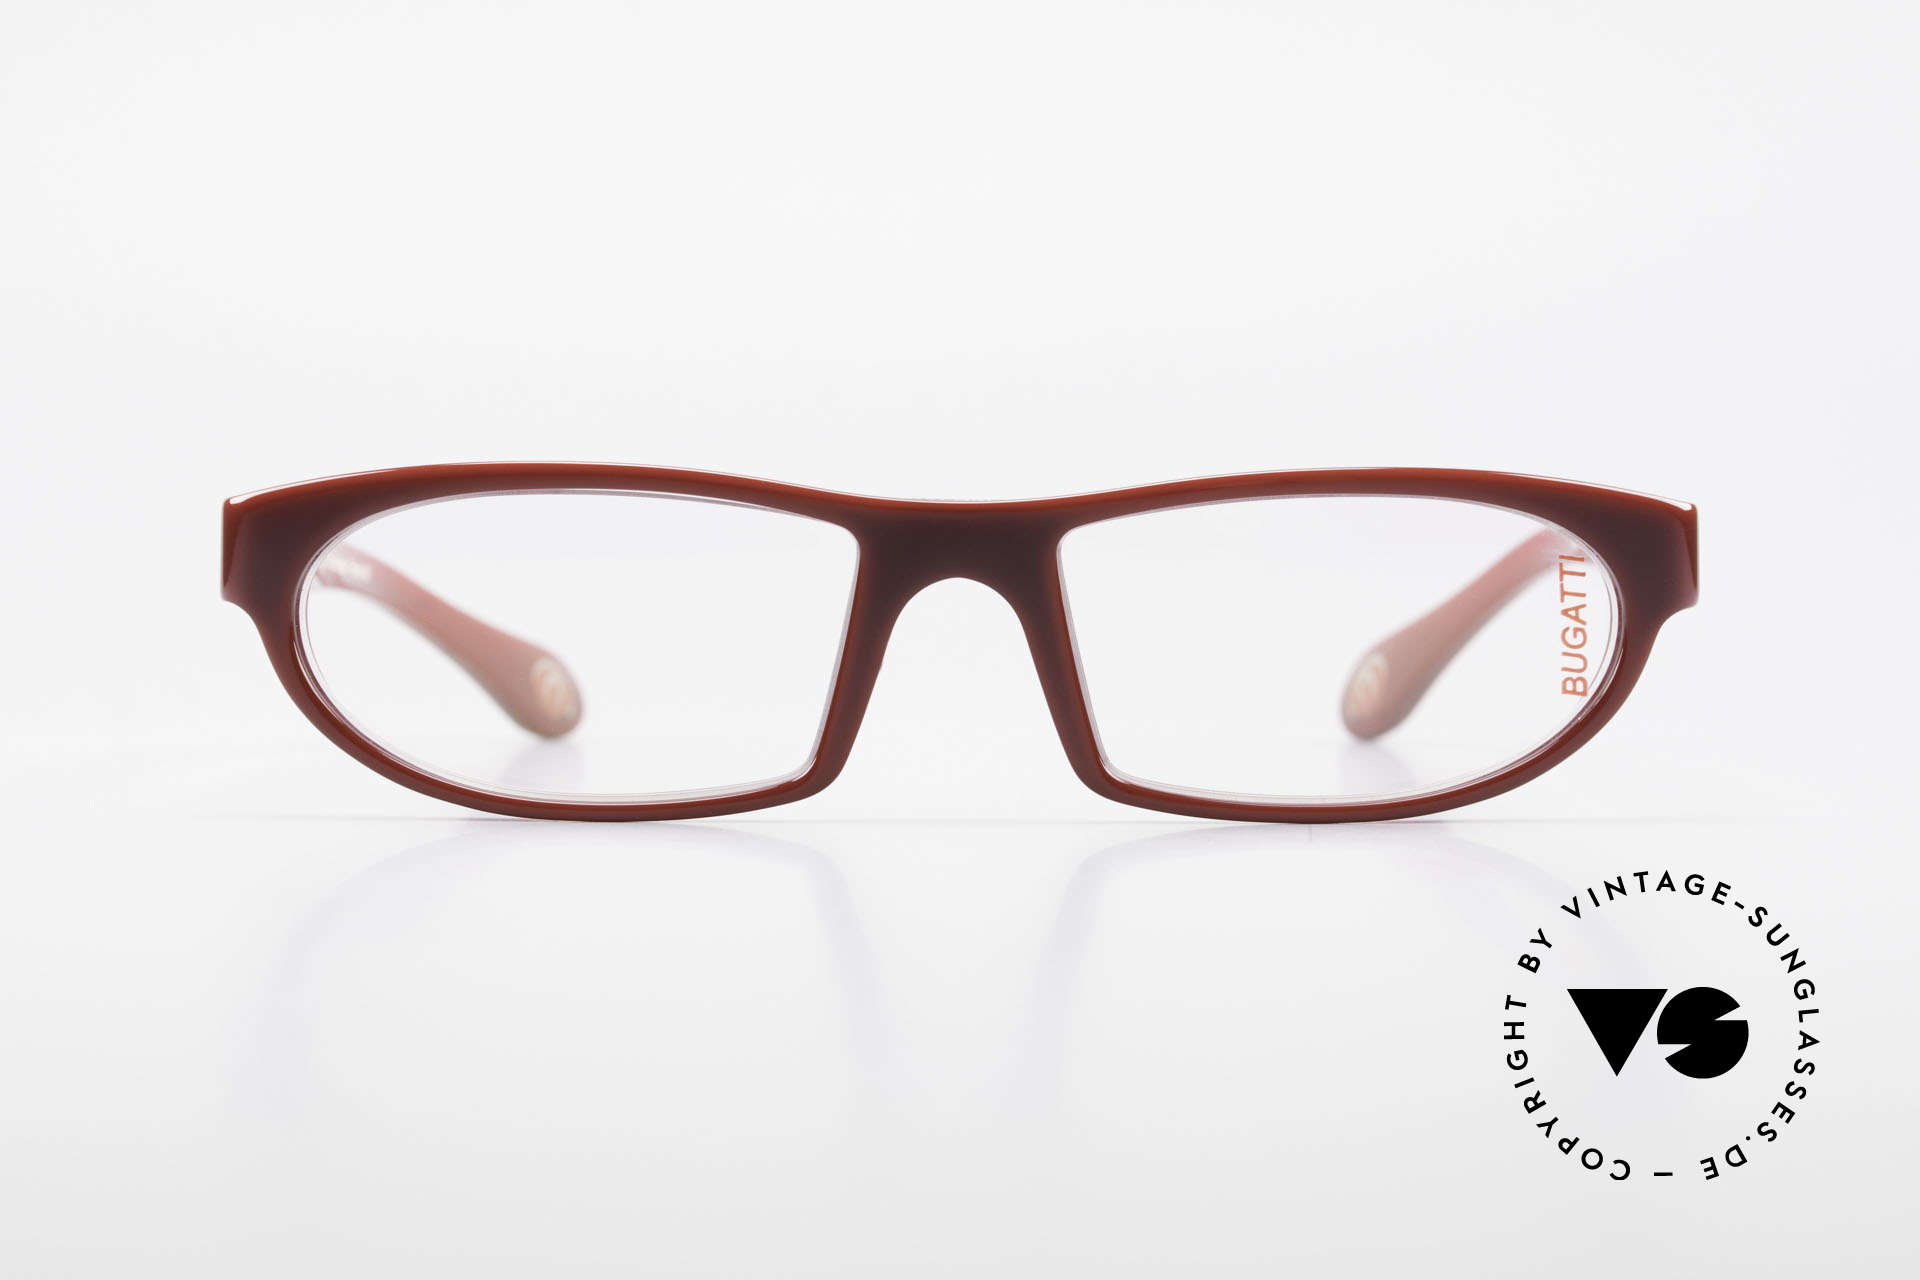 Bugatti 489 Sporty Designer Eyeglasses, TOP-NOTCH quality of all frame components, Made for Men